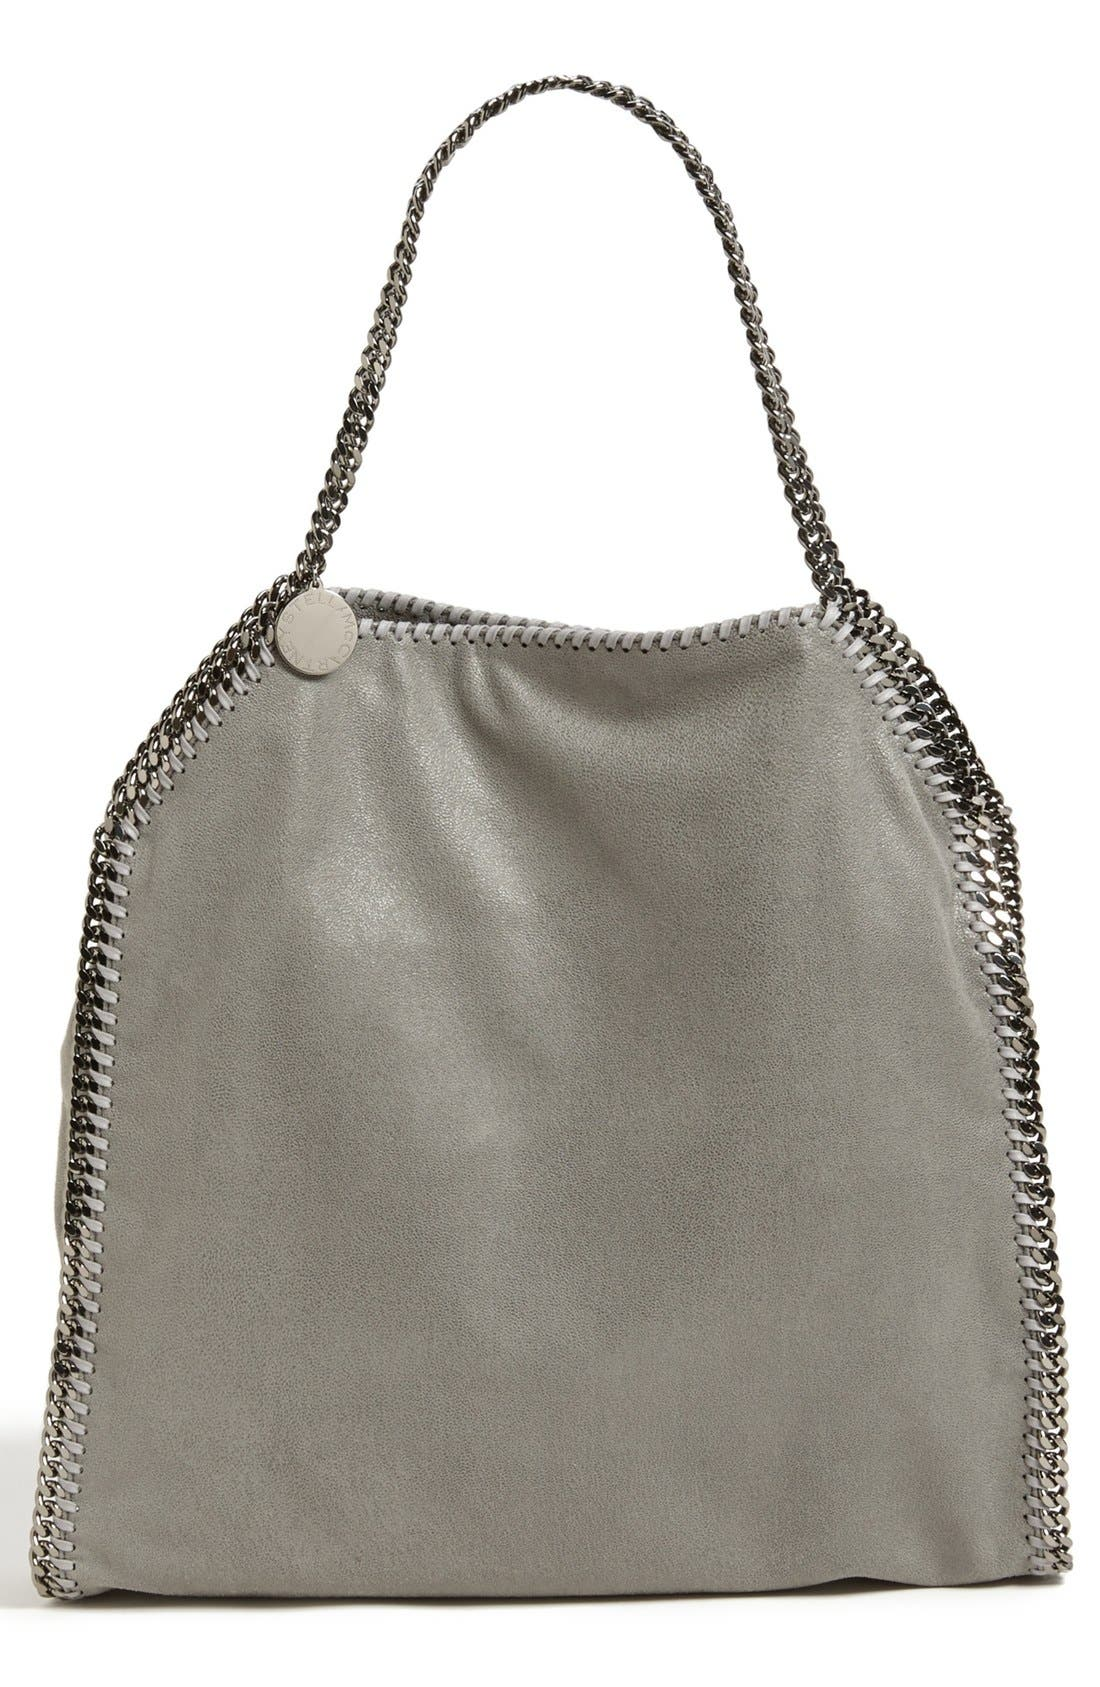 'Large Falabella - Shaggy Deer' Faux Leather Tote,                         Main,                         color, Lt.Grey